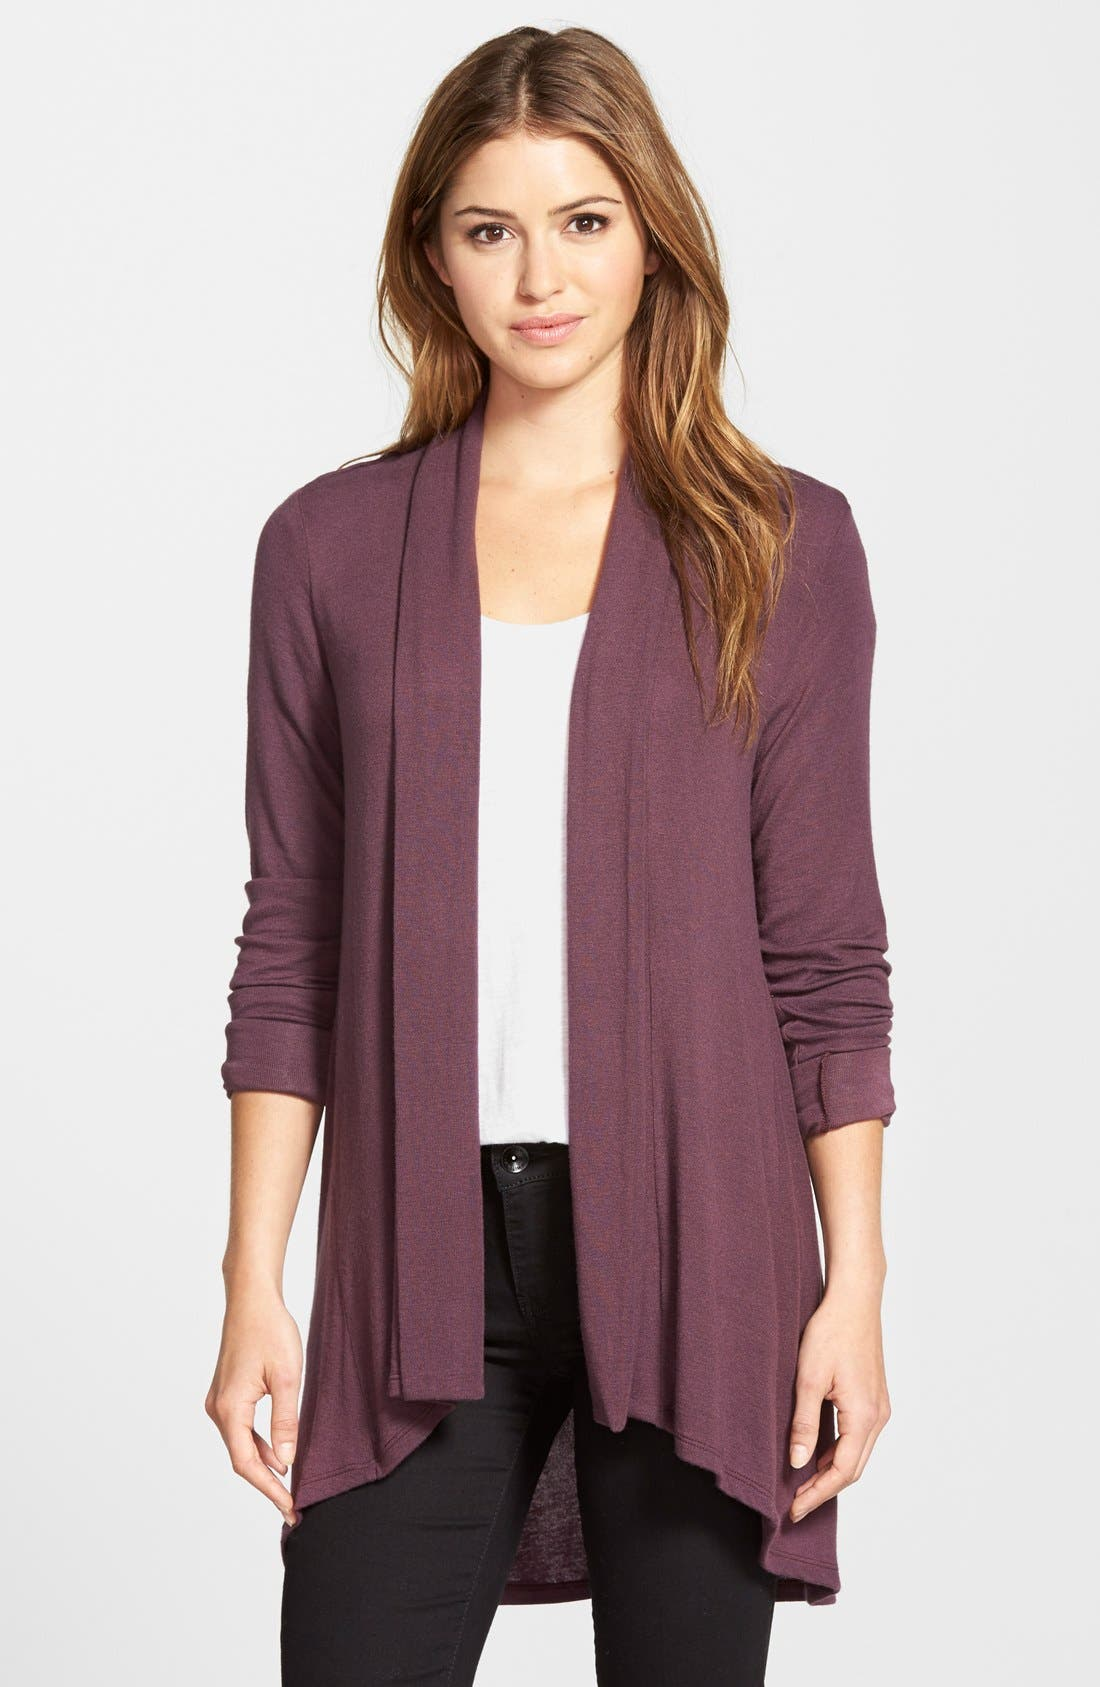 Bobeau High/Low Jersey Cardigan (Regular & Petite)